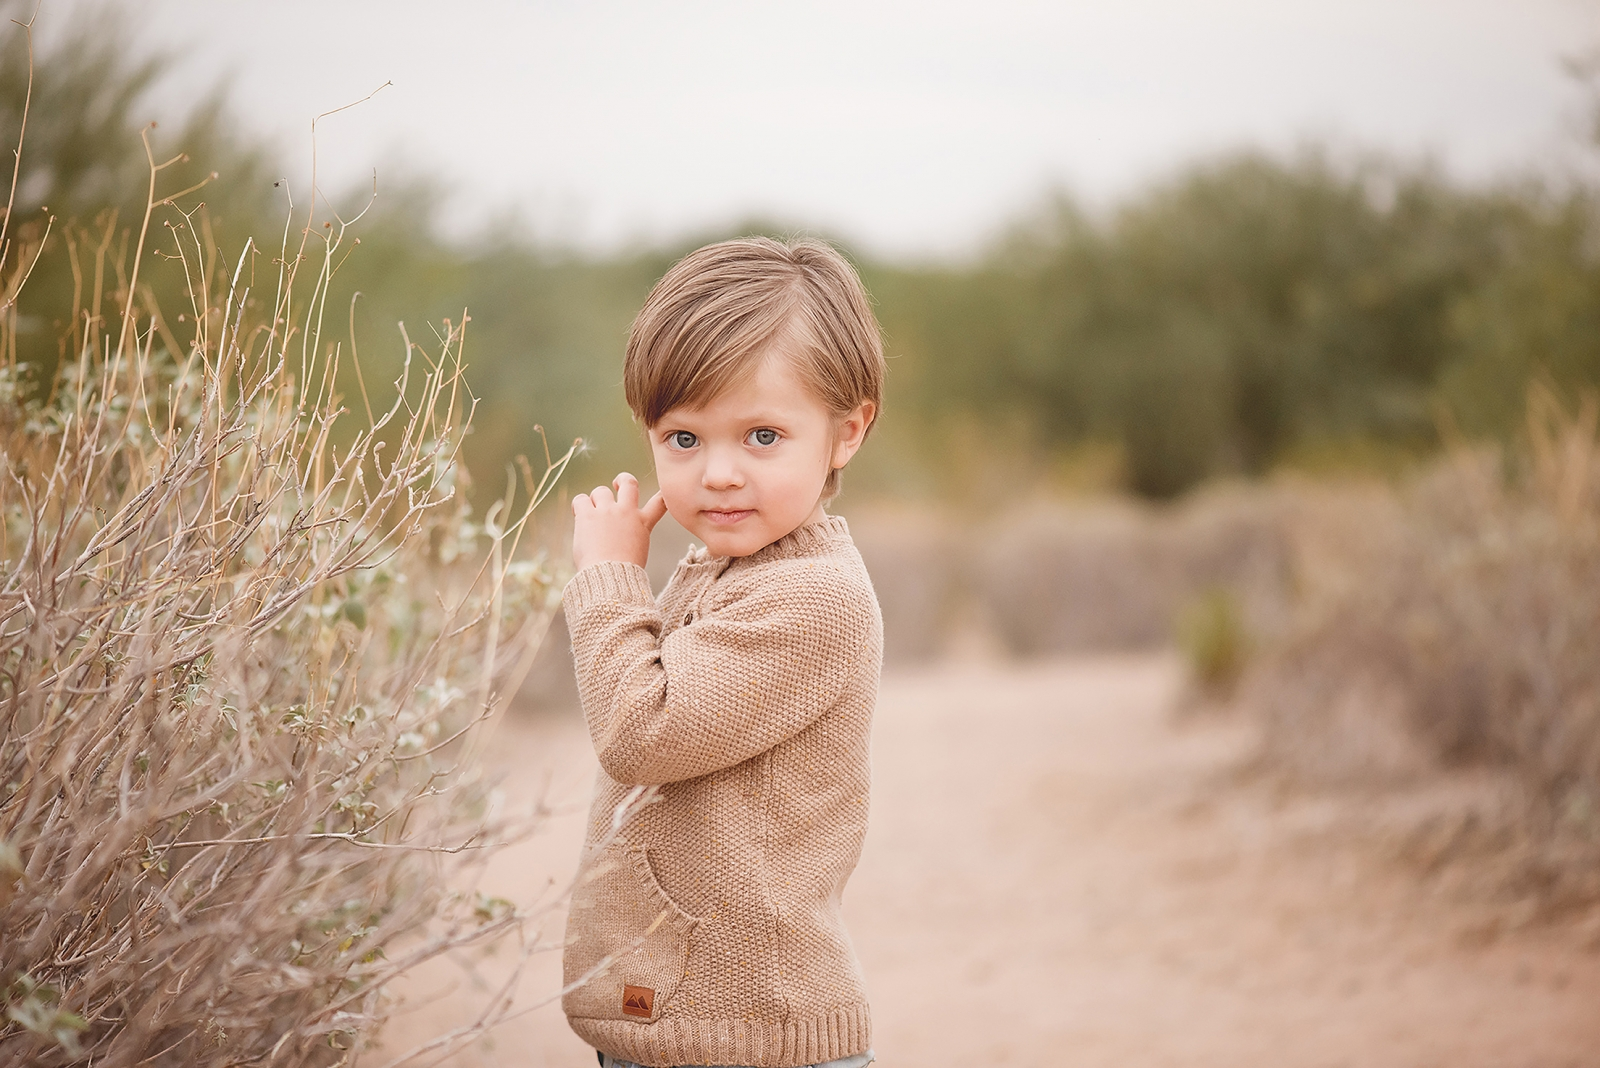 Outdoor child photography Chandler, AZ